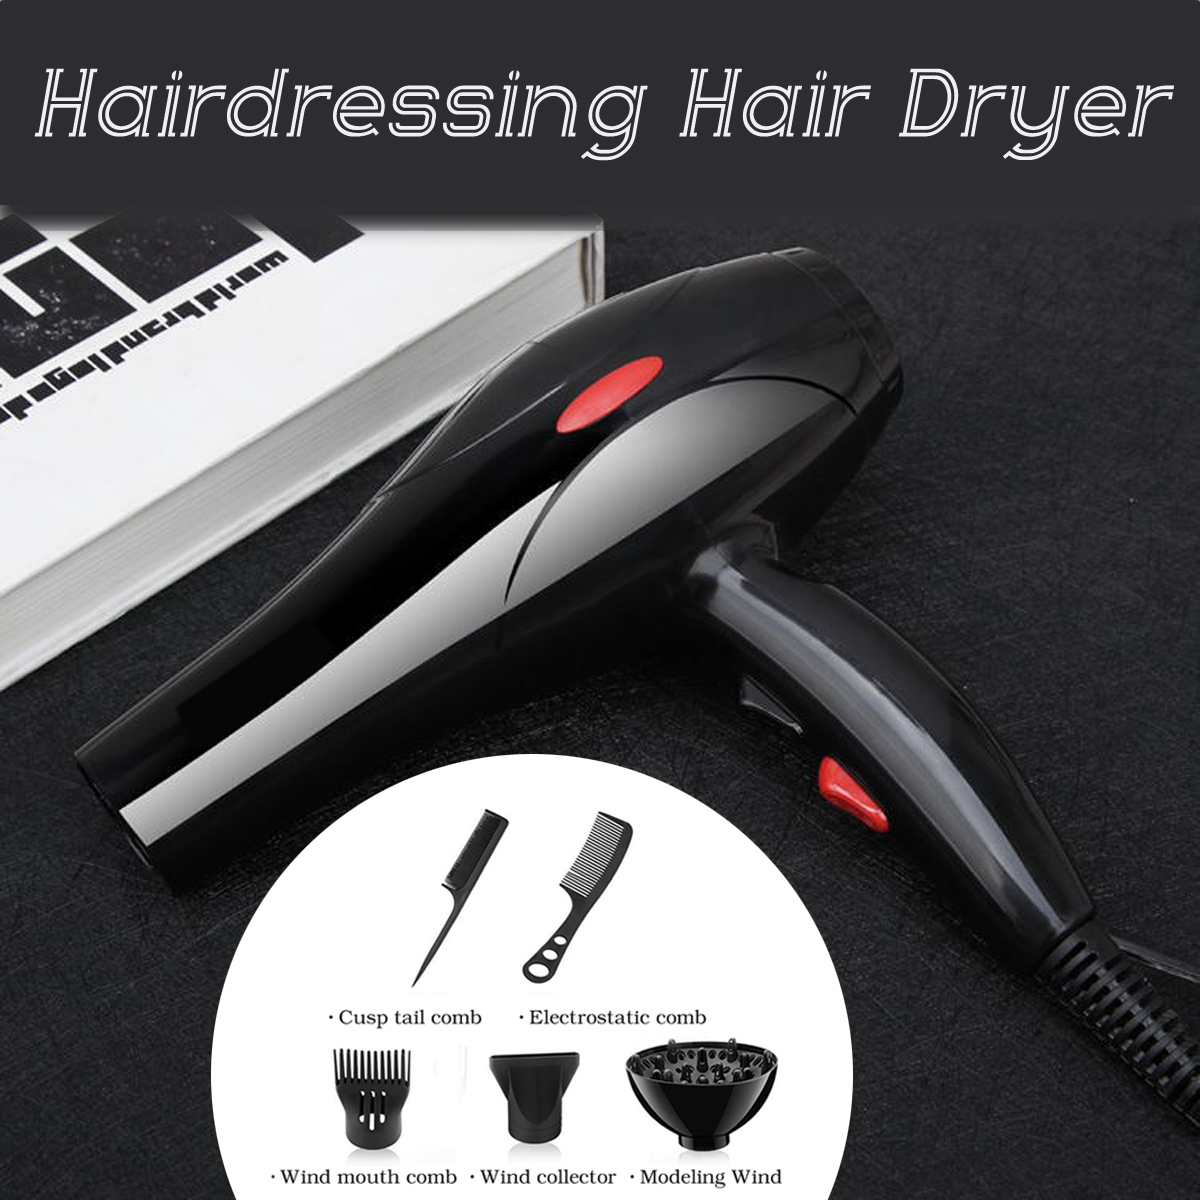 220V 50Hz 2200W Hair Dryer Black Dust and Noise Reduction Inlet Design